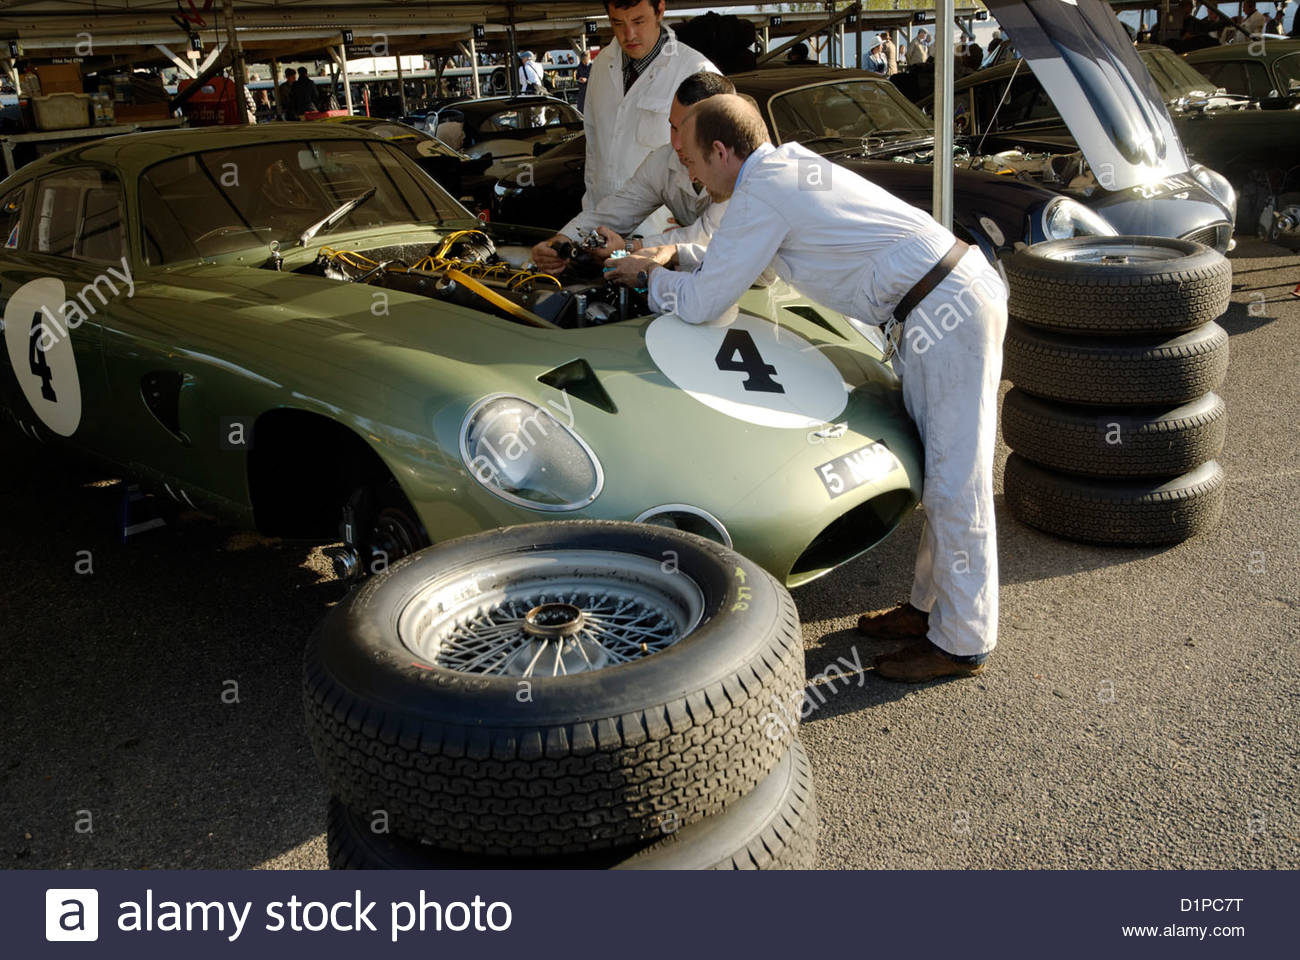 mechanics working on the engine of the 1963 Aston Martin Project 214 race car prototype - Stock Image